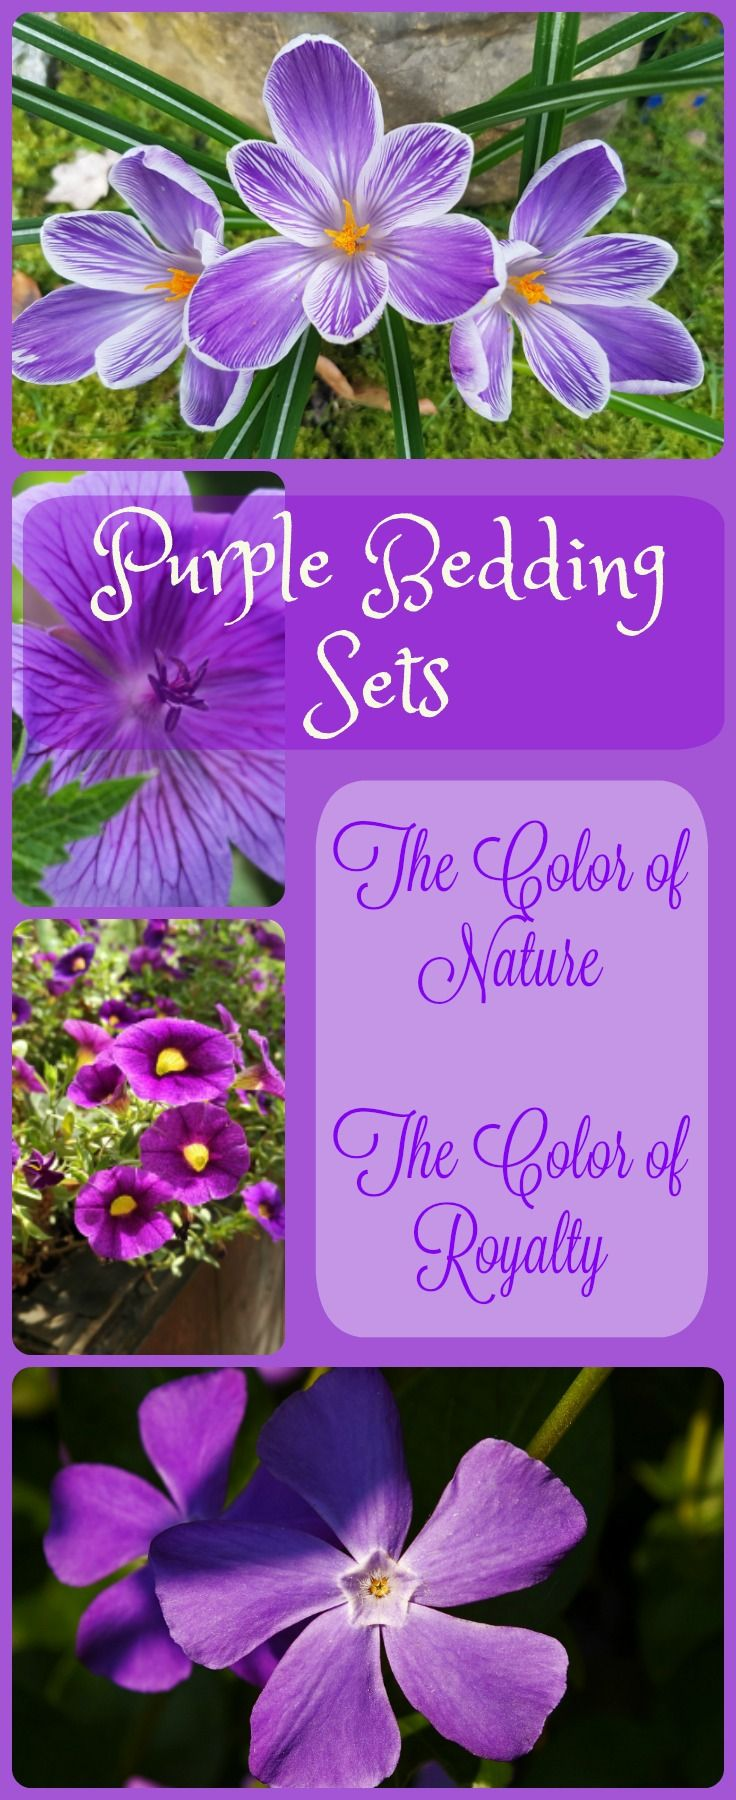 Purple bedding sets, beautiful regal bedroom decor which mimics nature and is used by royalty. Truly gorgeous bedding